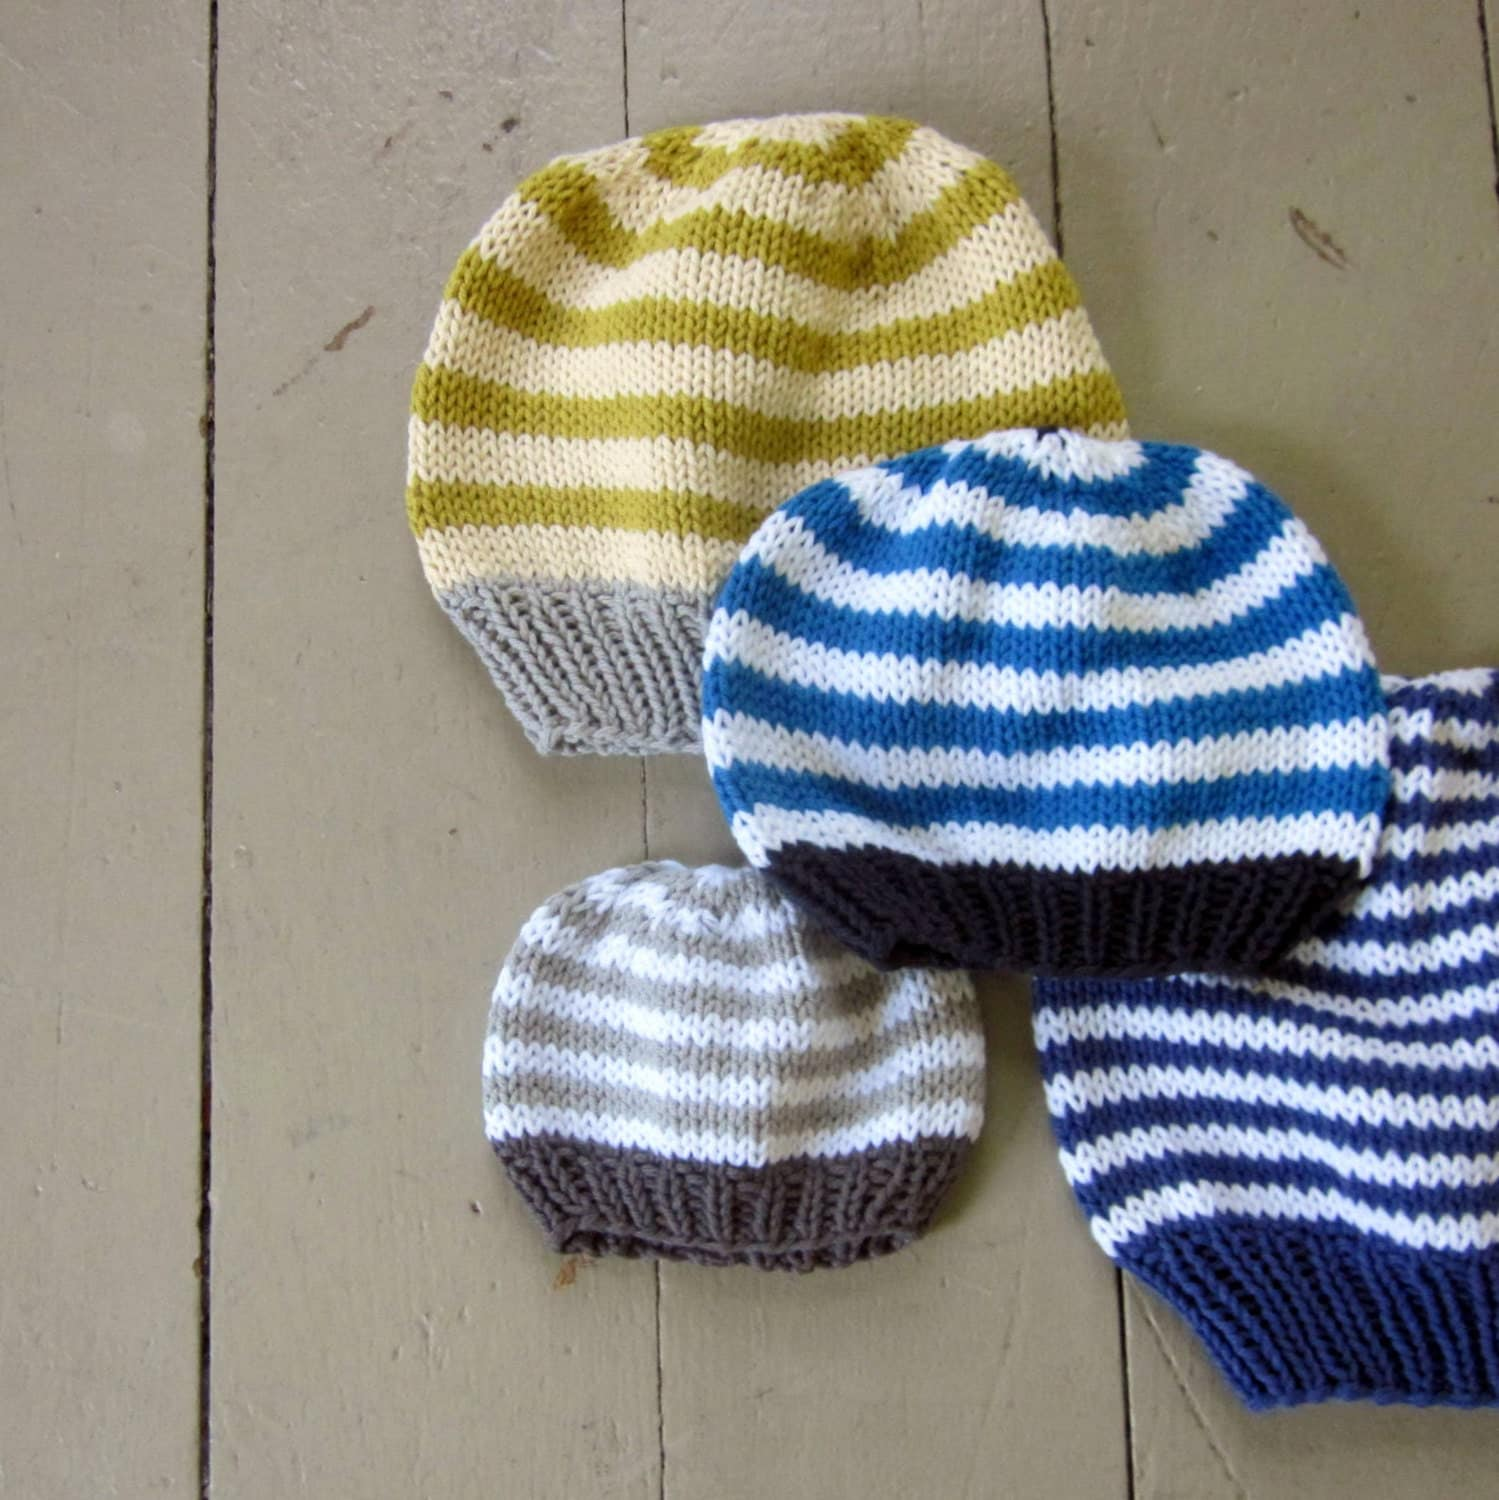 Knitting Beanie Patterns : Baby hat knitting pattern basic beanie pdf by sweetbabydolly